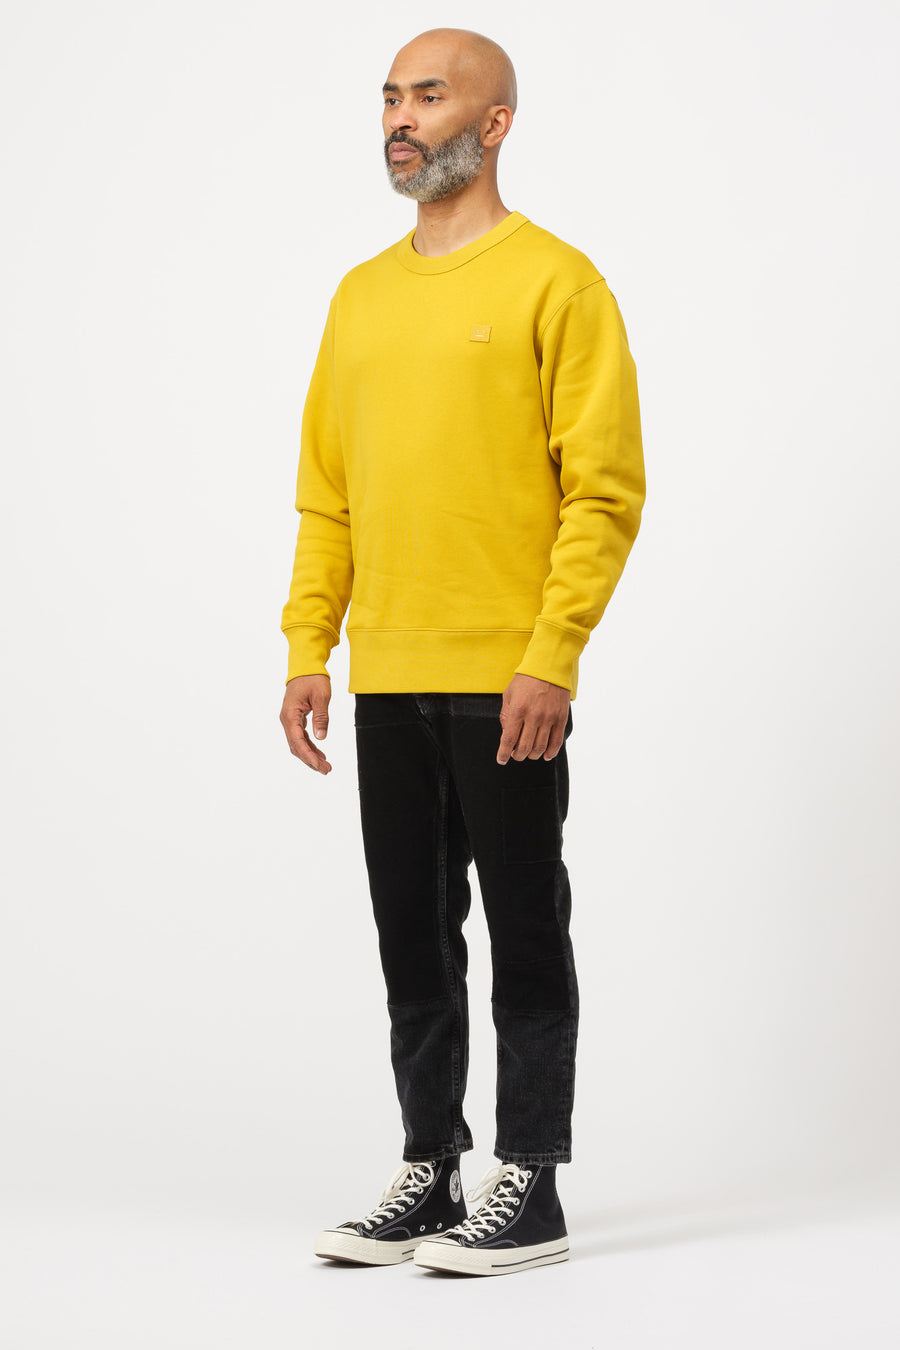 Acne Studios Fairview Face Crewneck in Amber Yellow - Notre